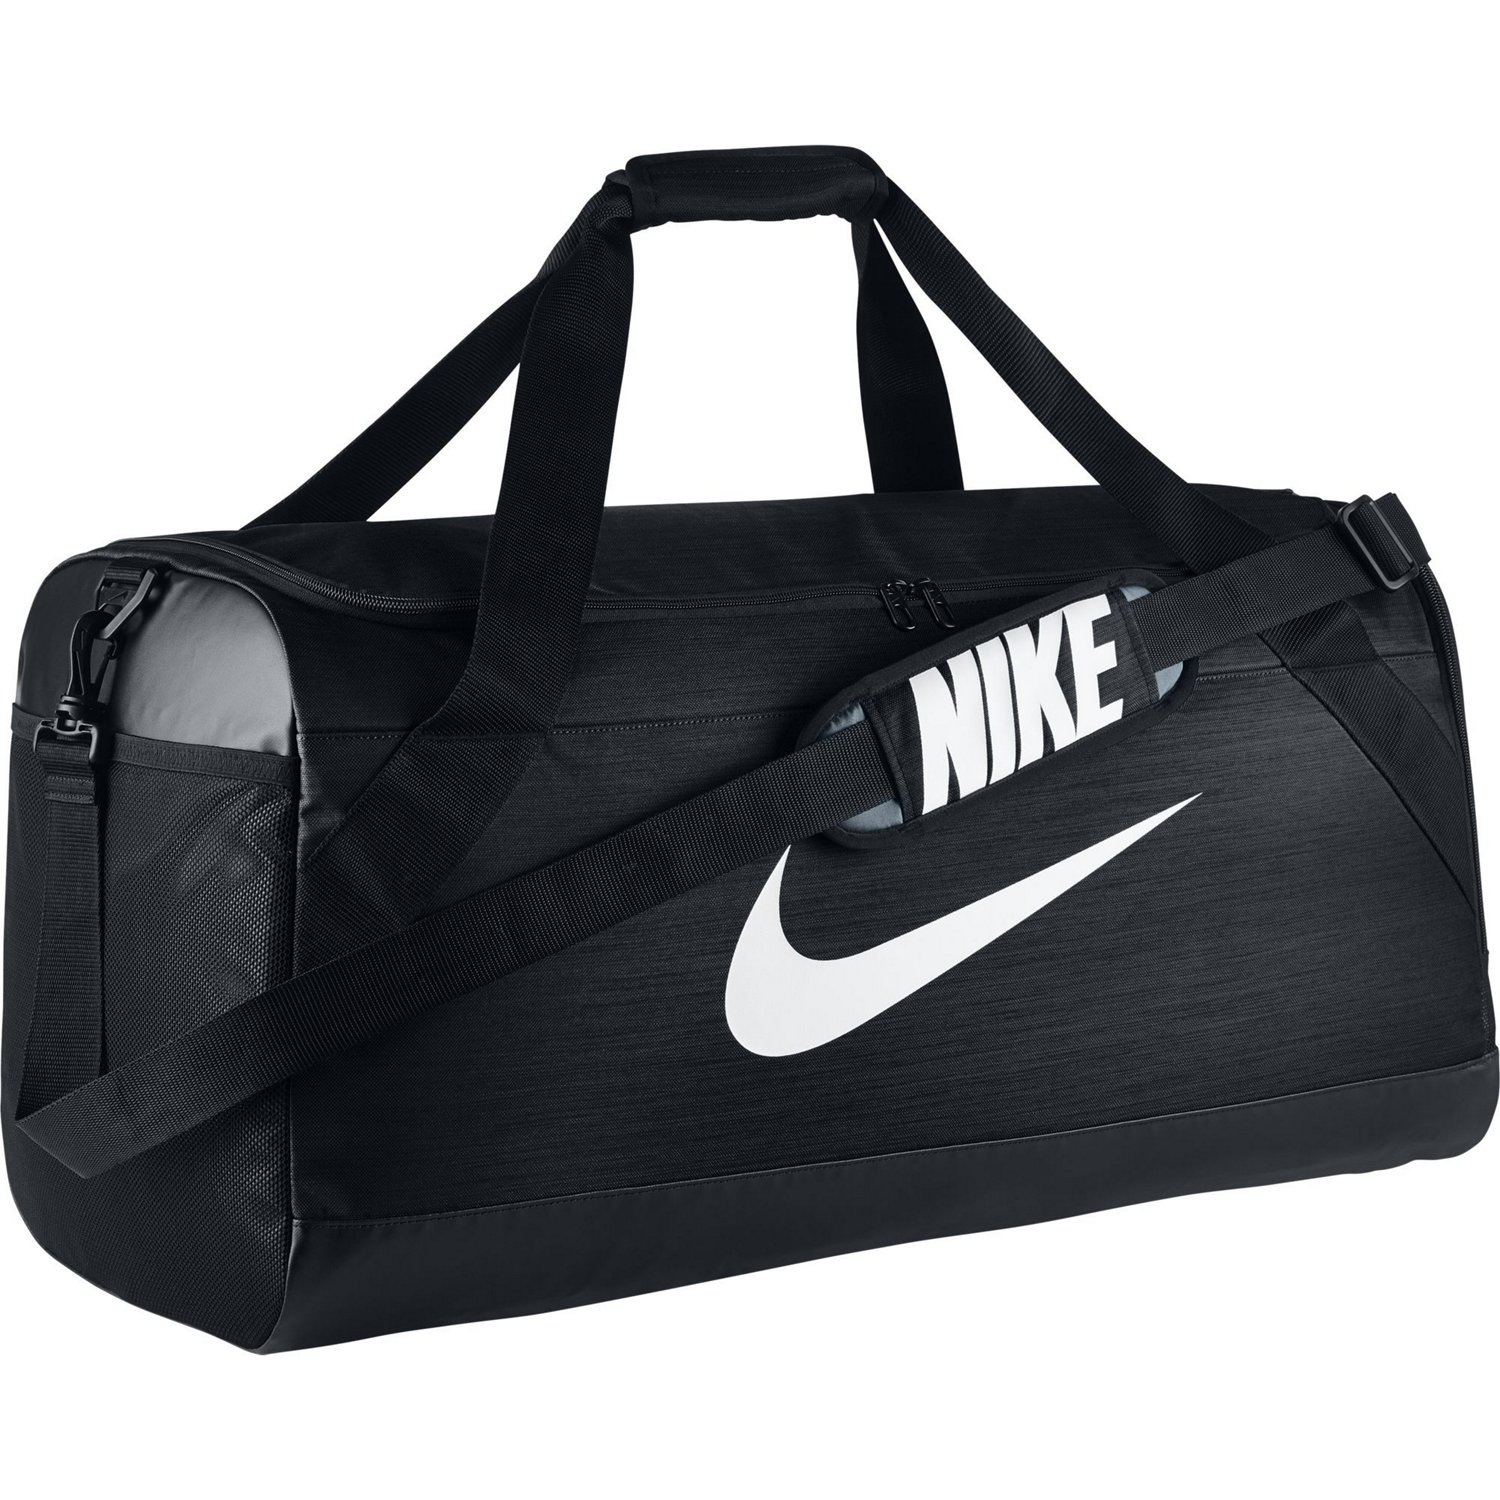 Display product reviews for Nike Brasilia Large Duffel Bag a33087b30a2ff